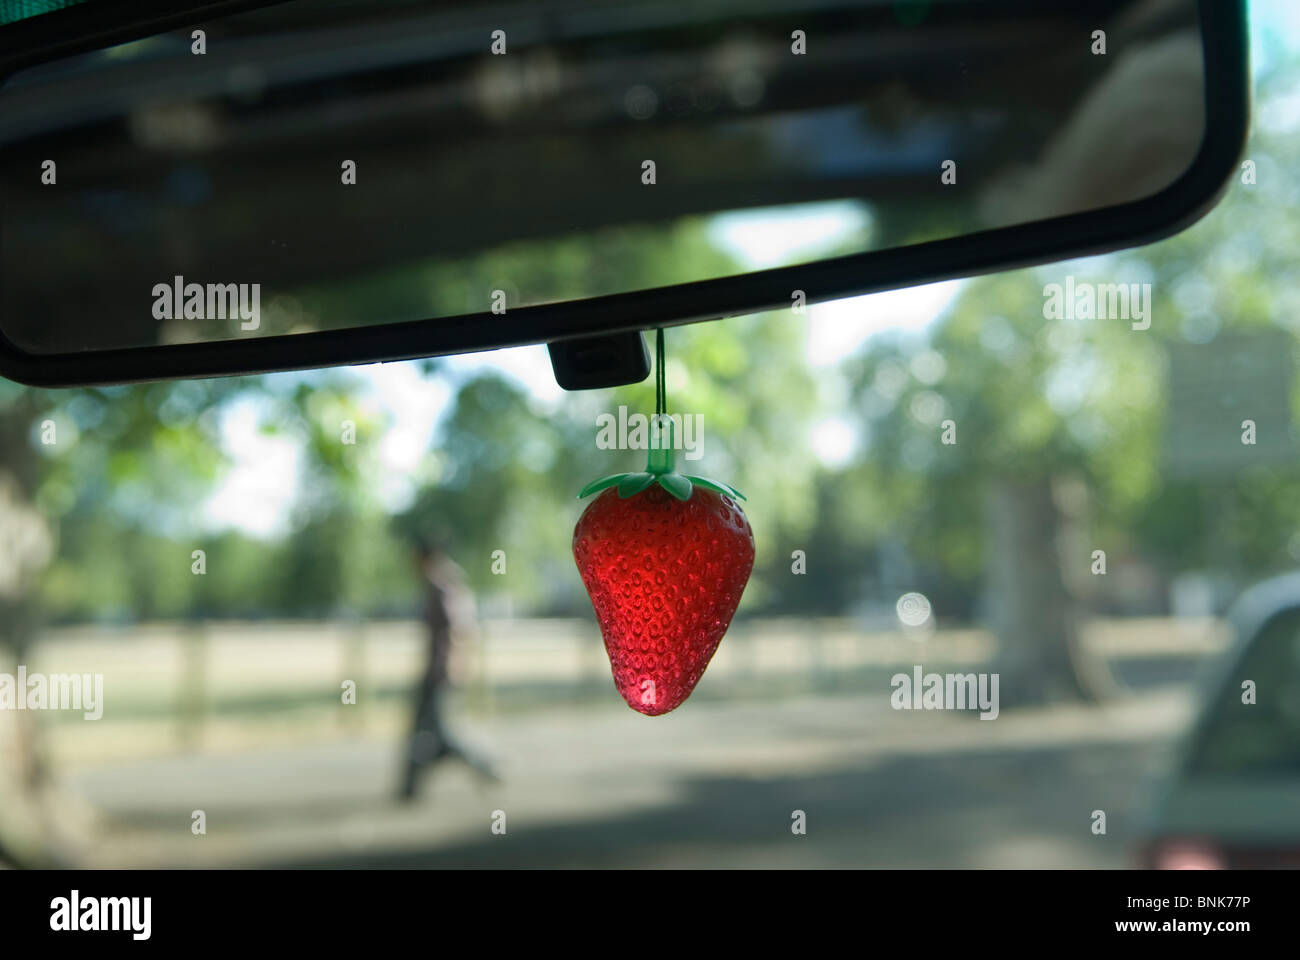 car air freshener hanging from internal rear view wing mirror homer stock photo royalty free. Black Bedroom Furniture Sets. Home Design Ideas